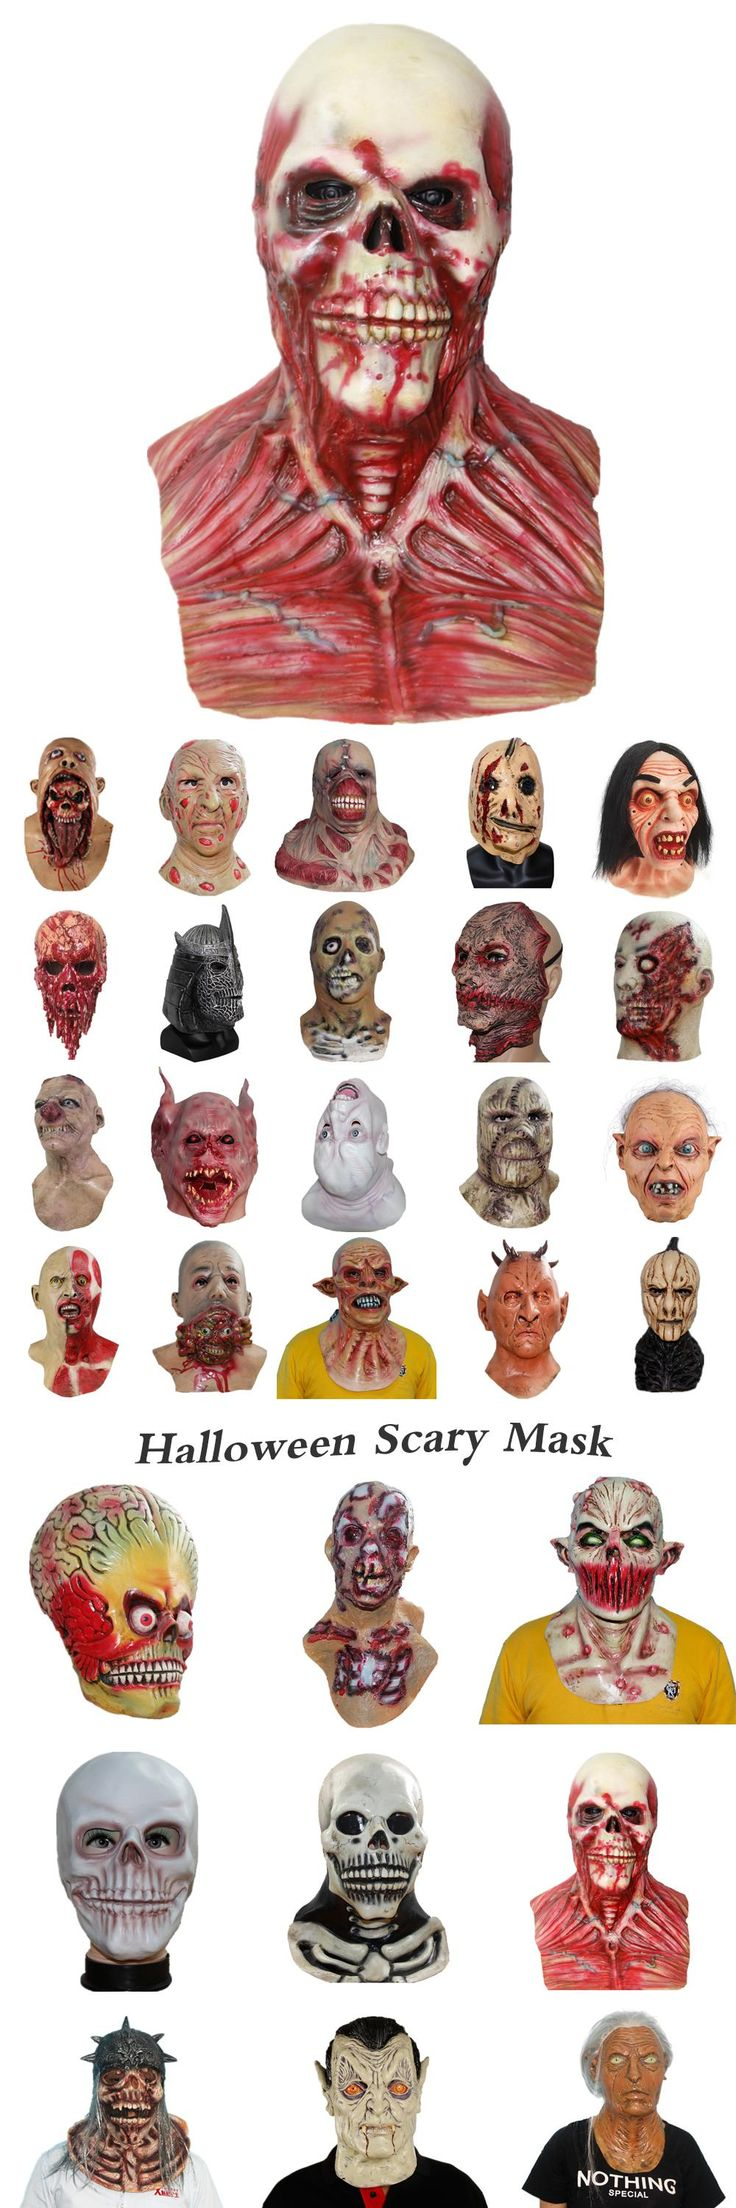 X-MERRY TOY Realistic Scary Monster Skeleton Costume Latex Mask Alien Freddy Kluge Gollum Horror Skull Zombie Masks For Cosplay